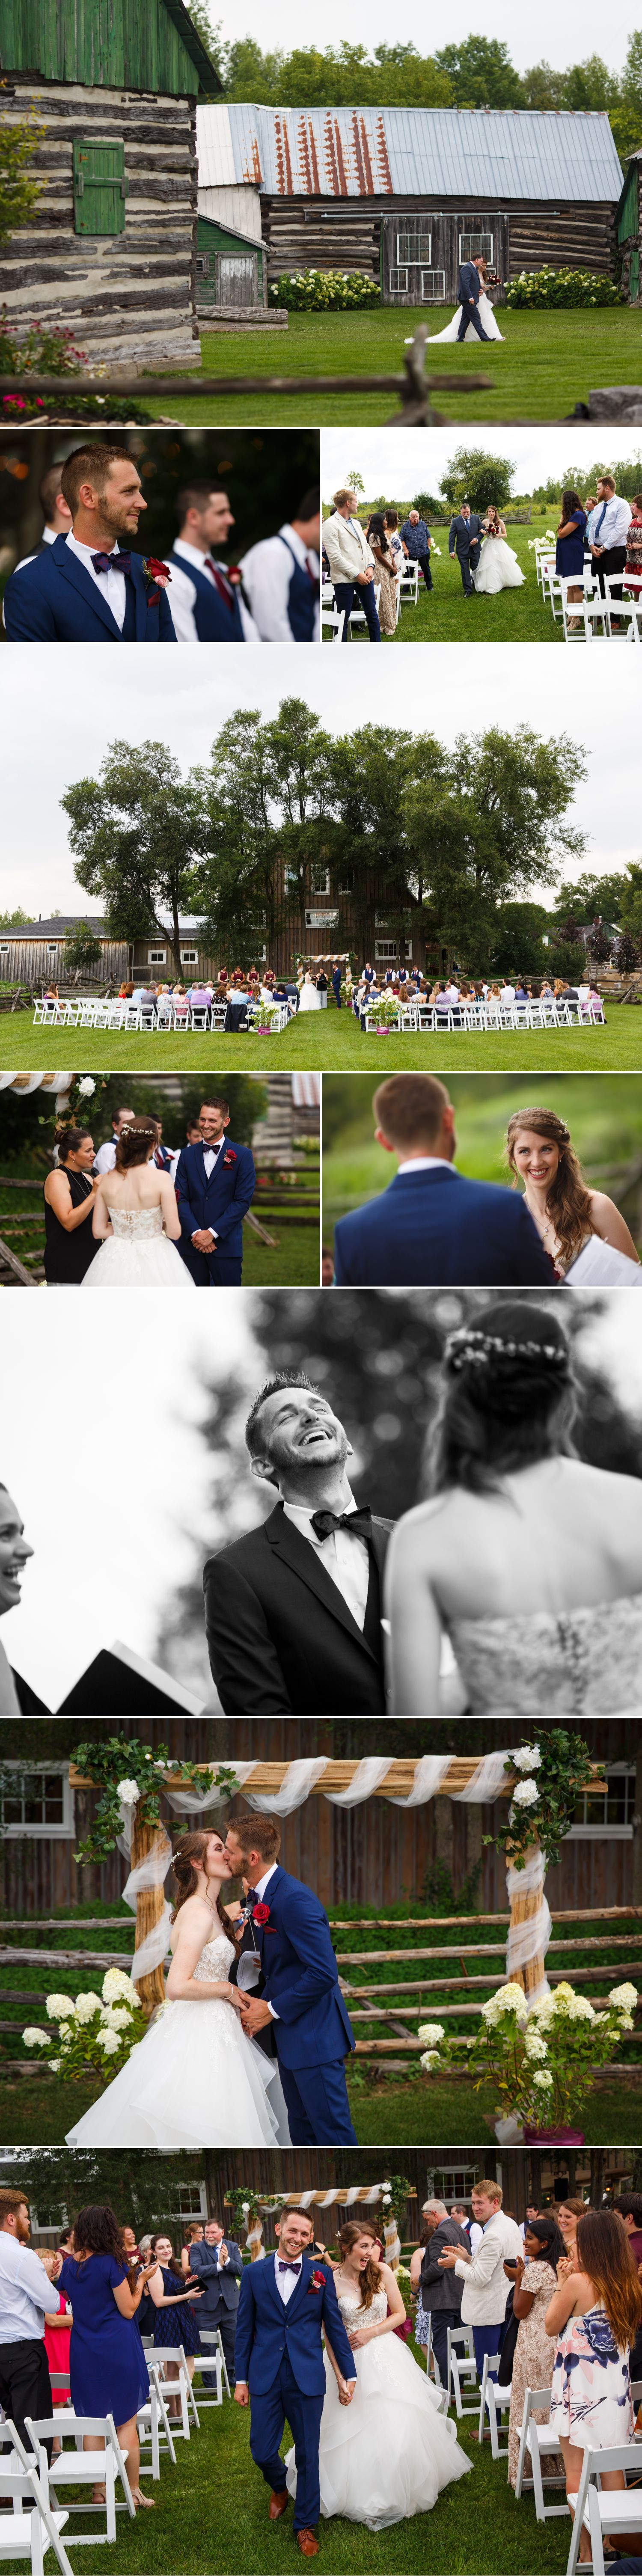 An outdoor wedding ceremony taking place at Stonefields Estate